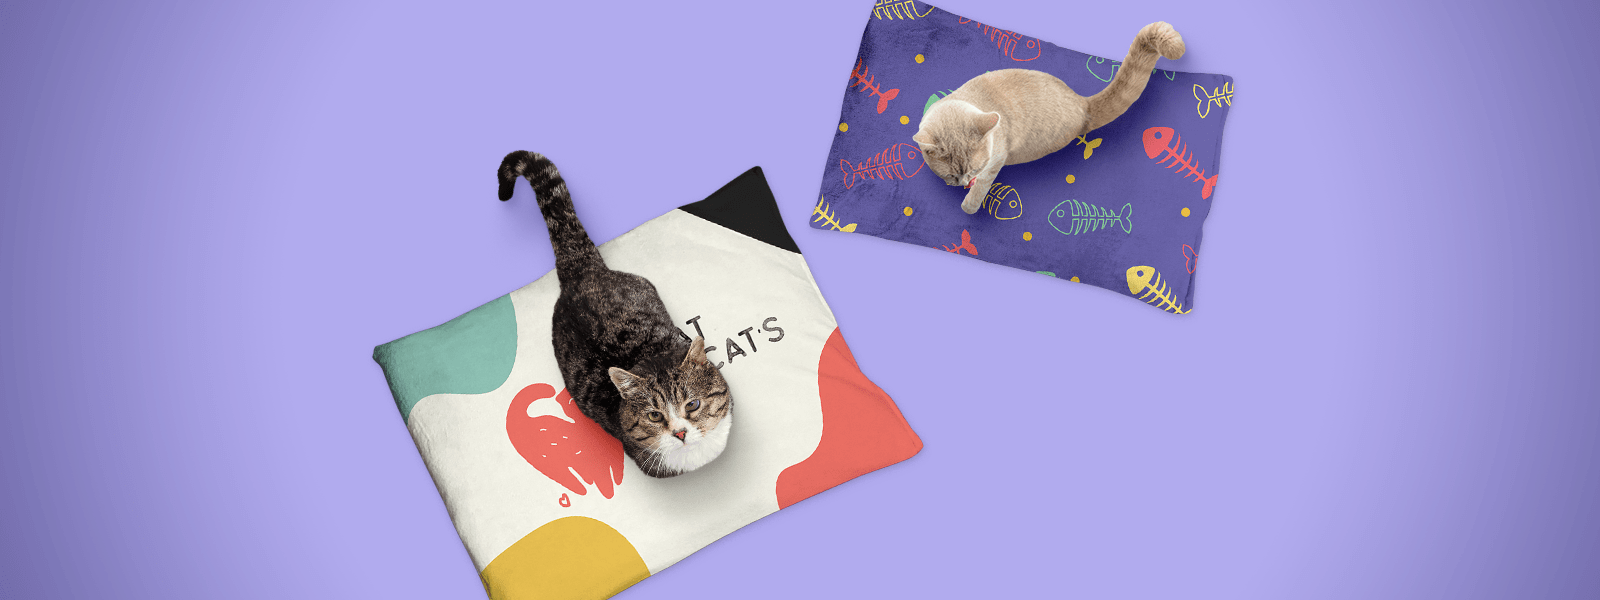 Best Recommendations for Cat Beds